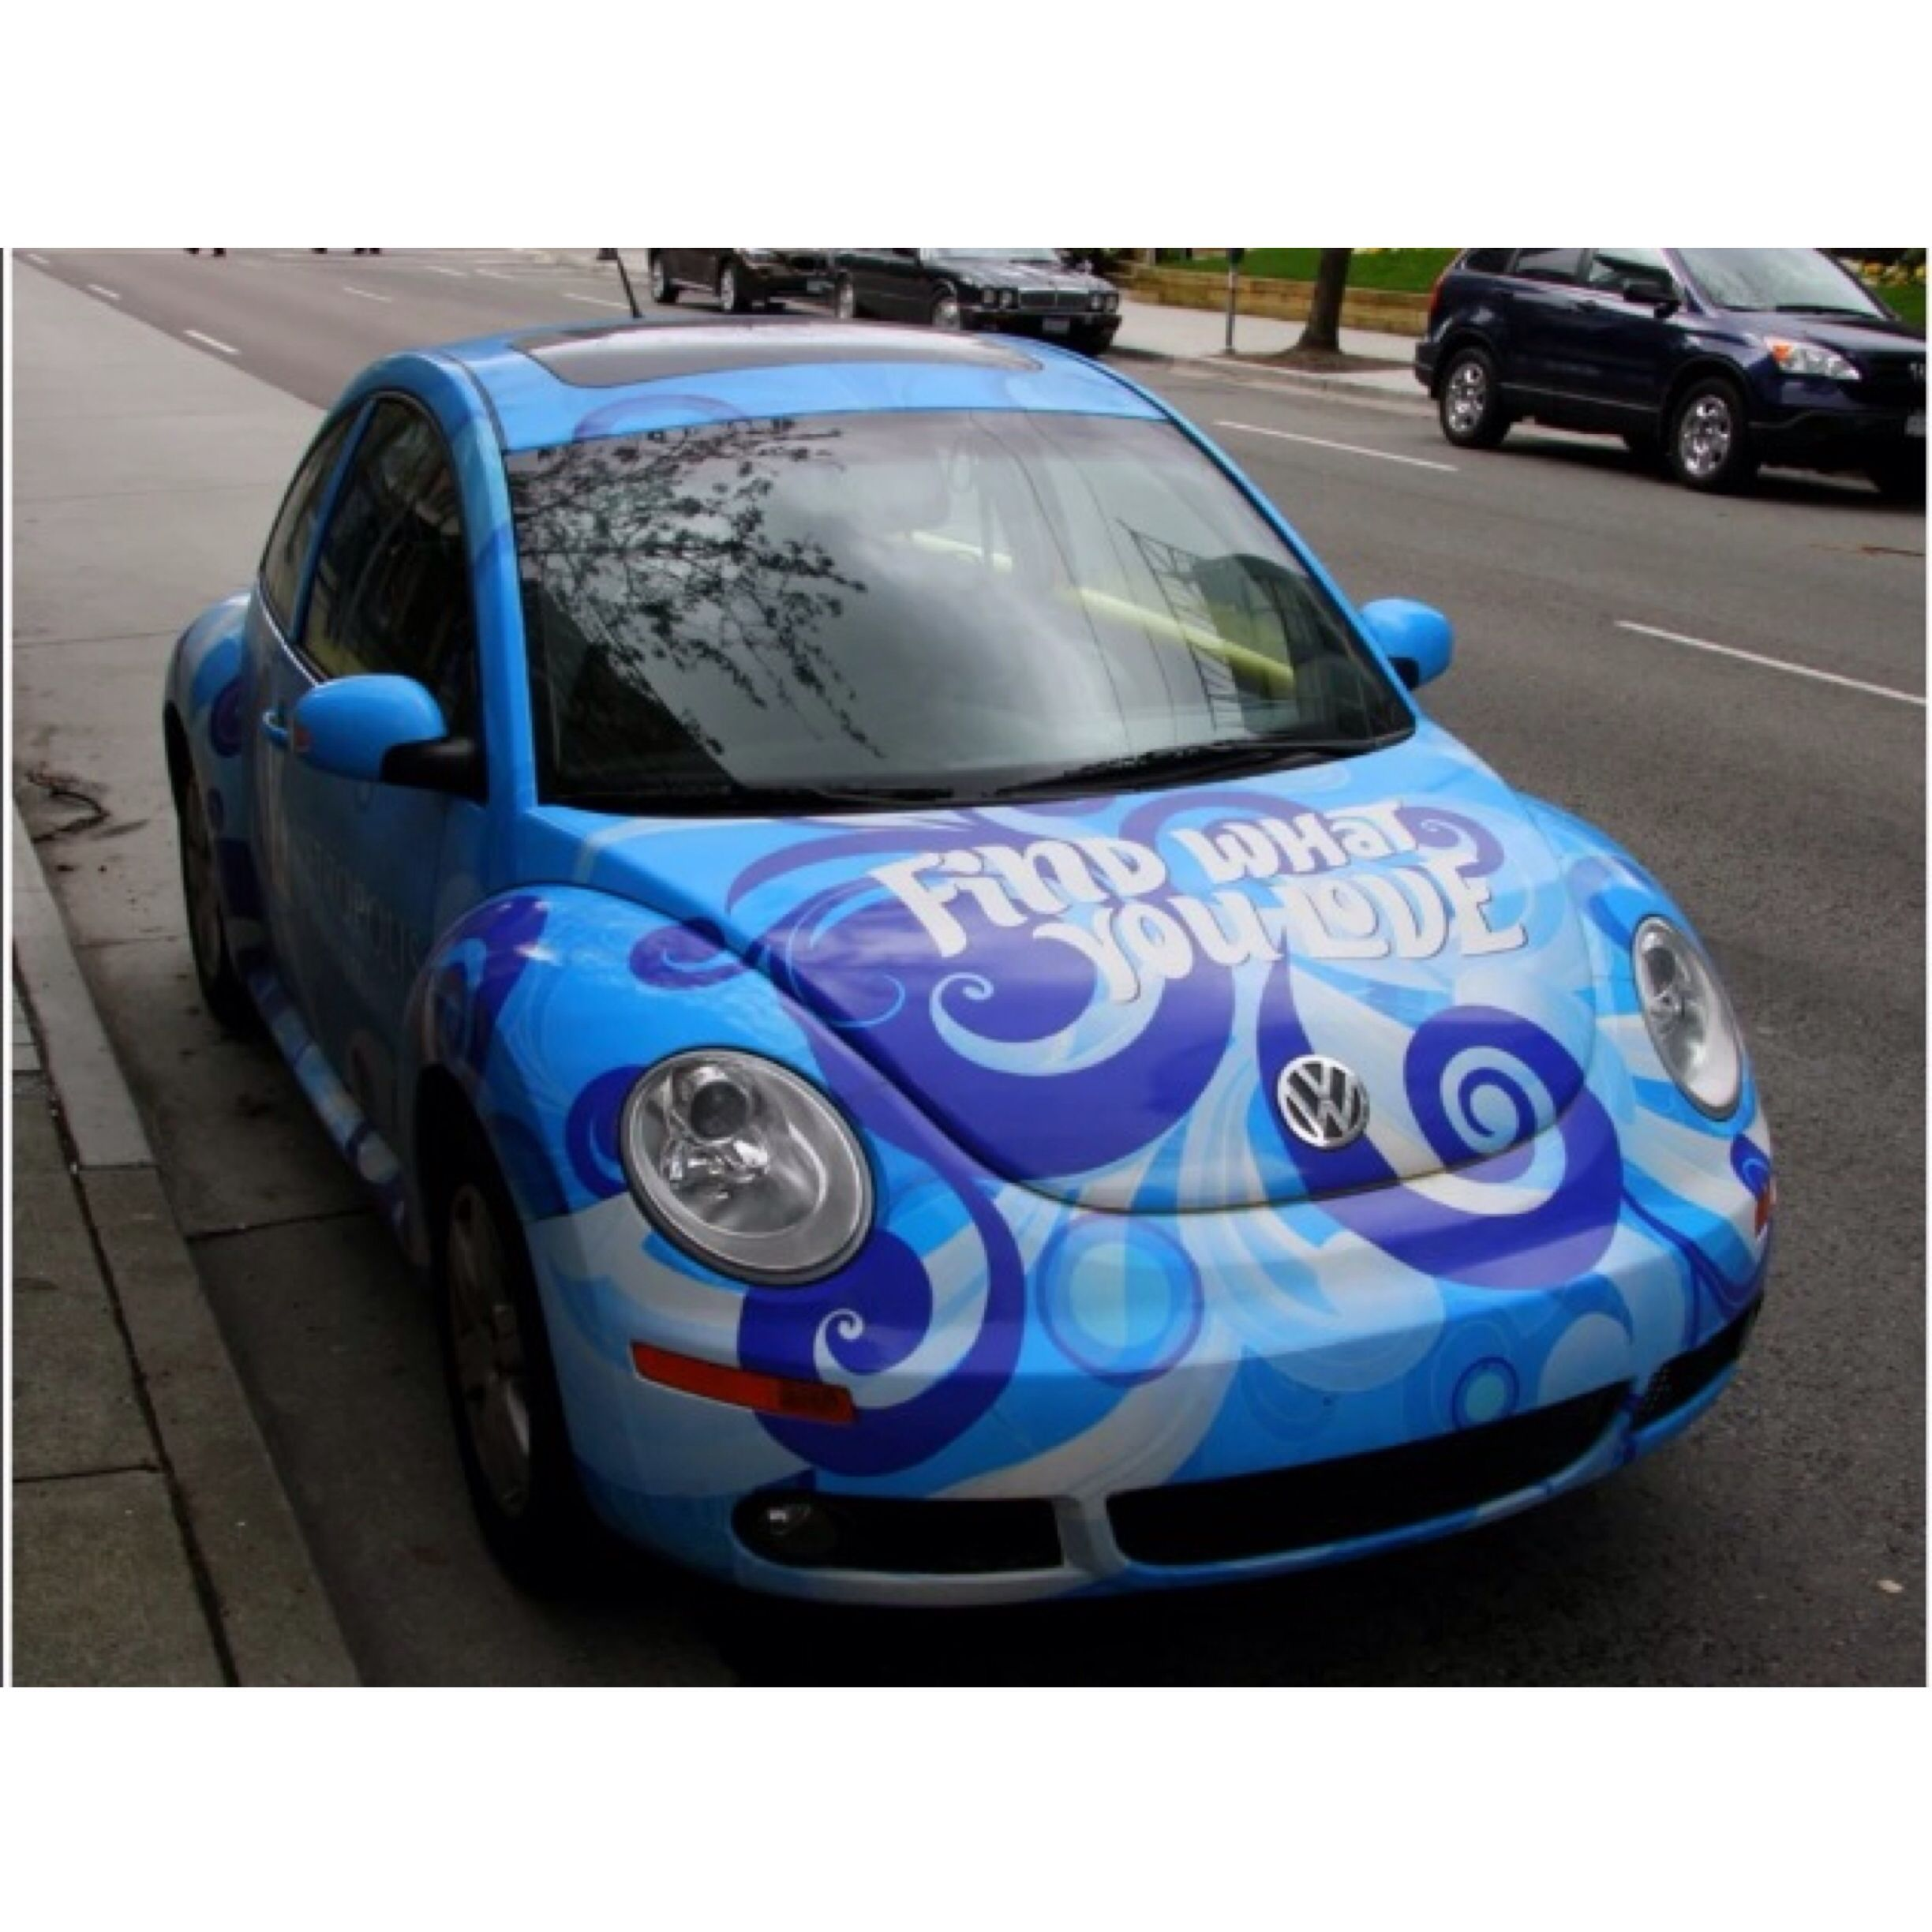 A wrapped vw beetle advertising metrotown mall in vancouver